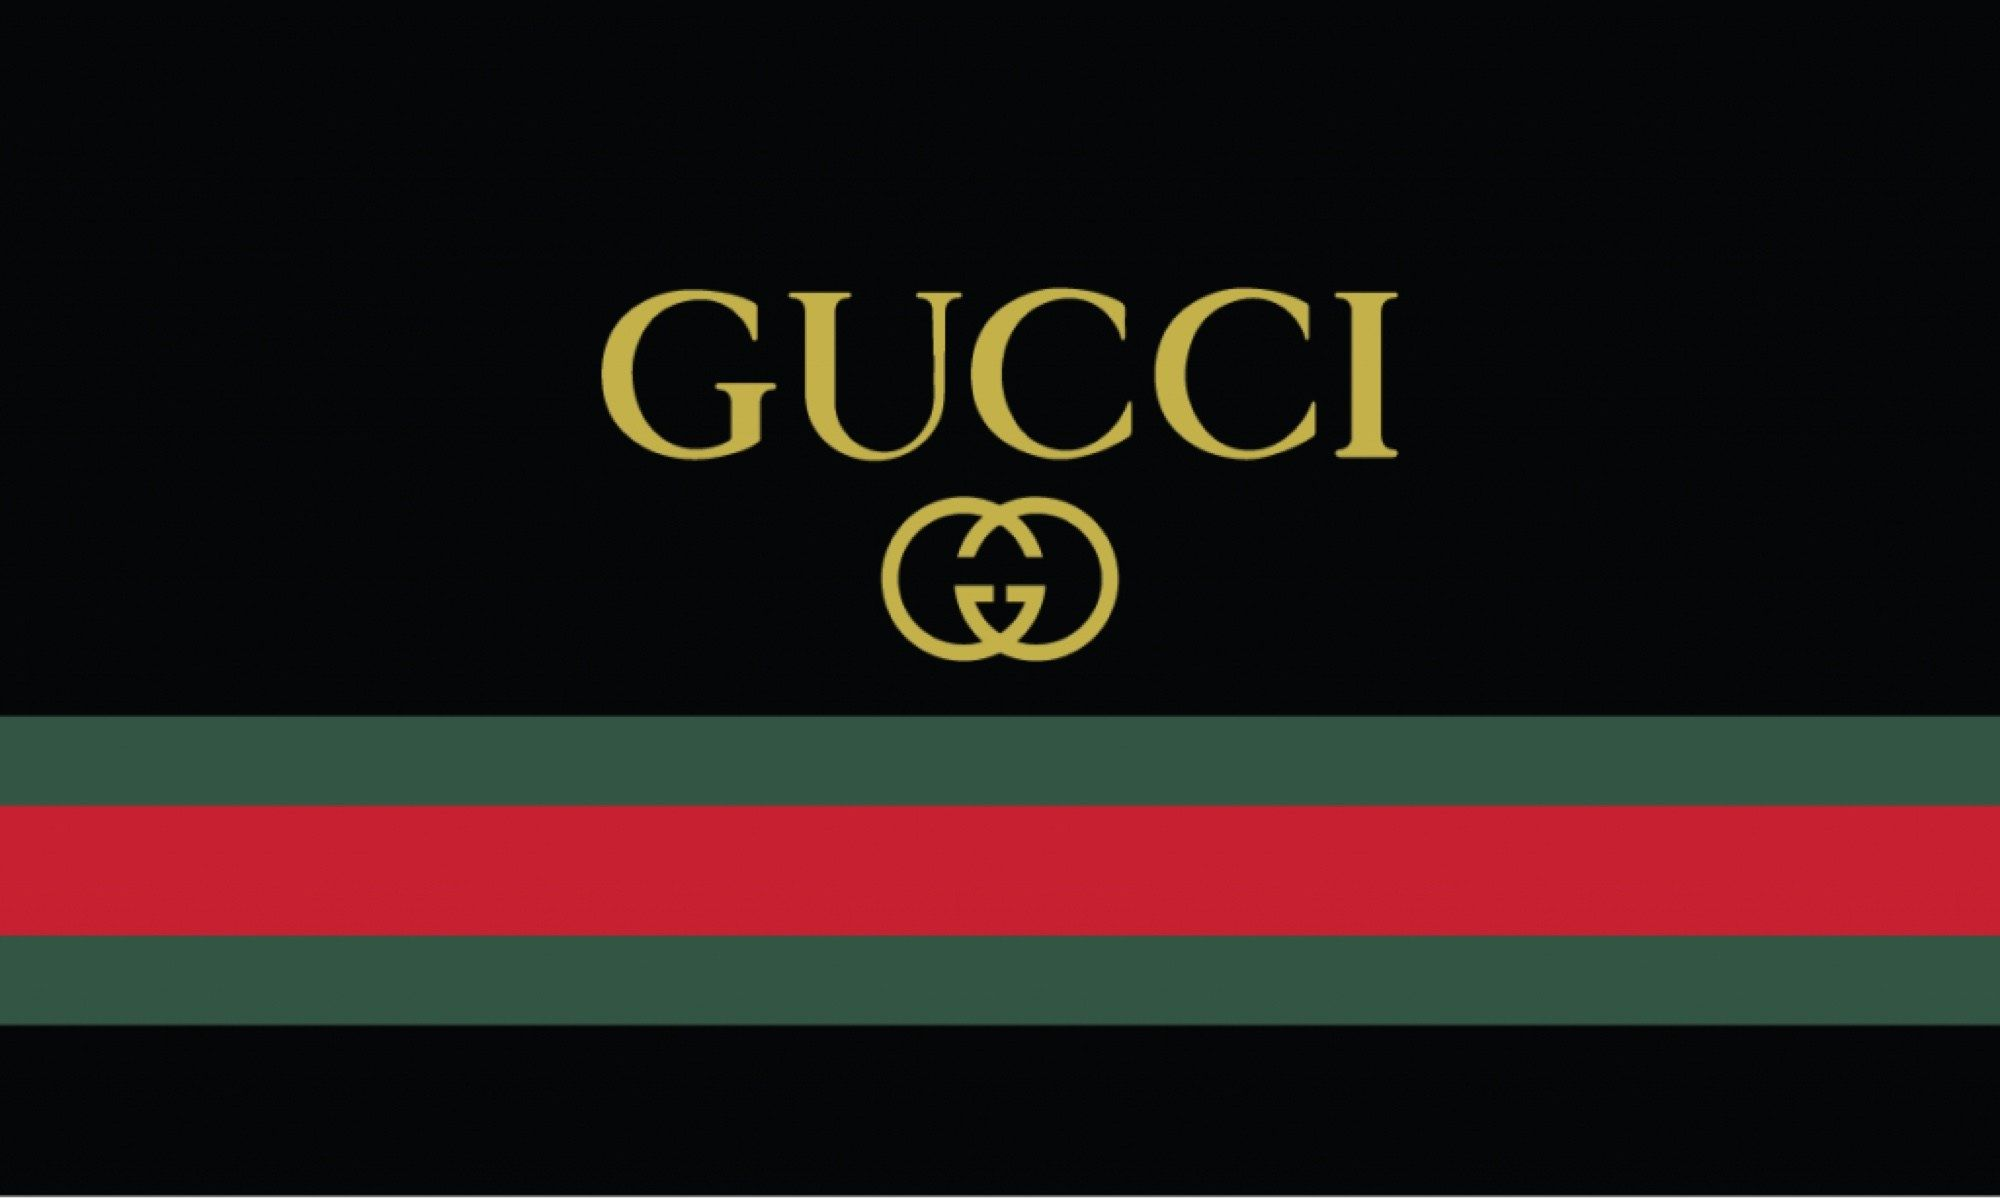 Gucci Wallpapers • TrumpWallpapers